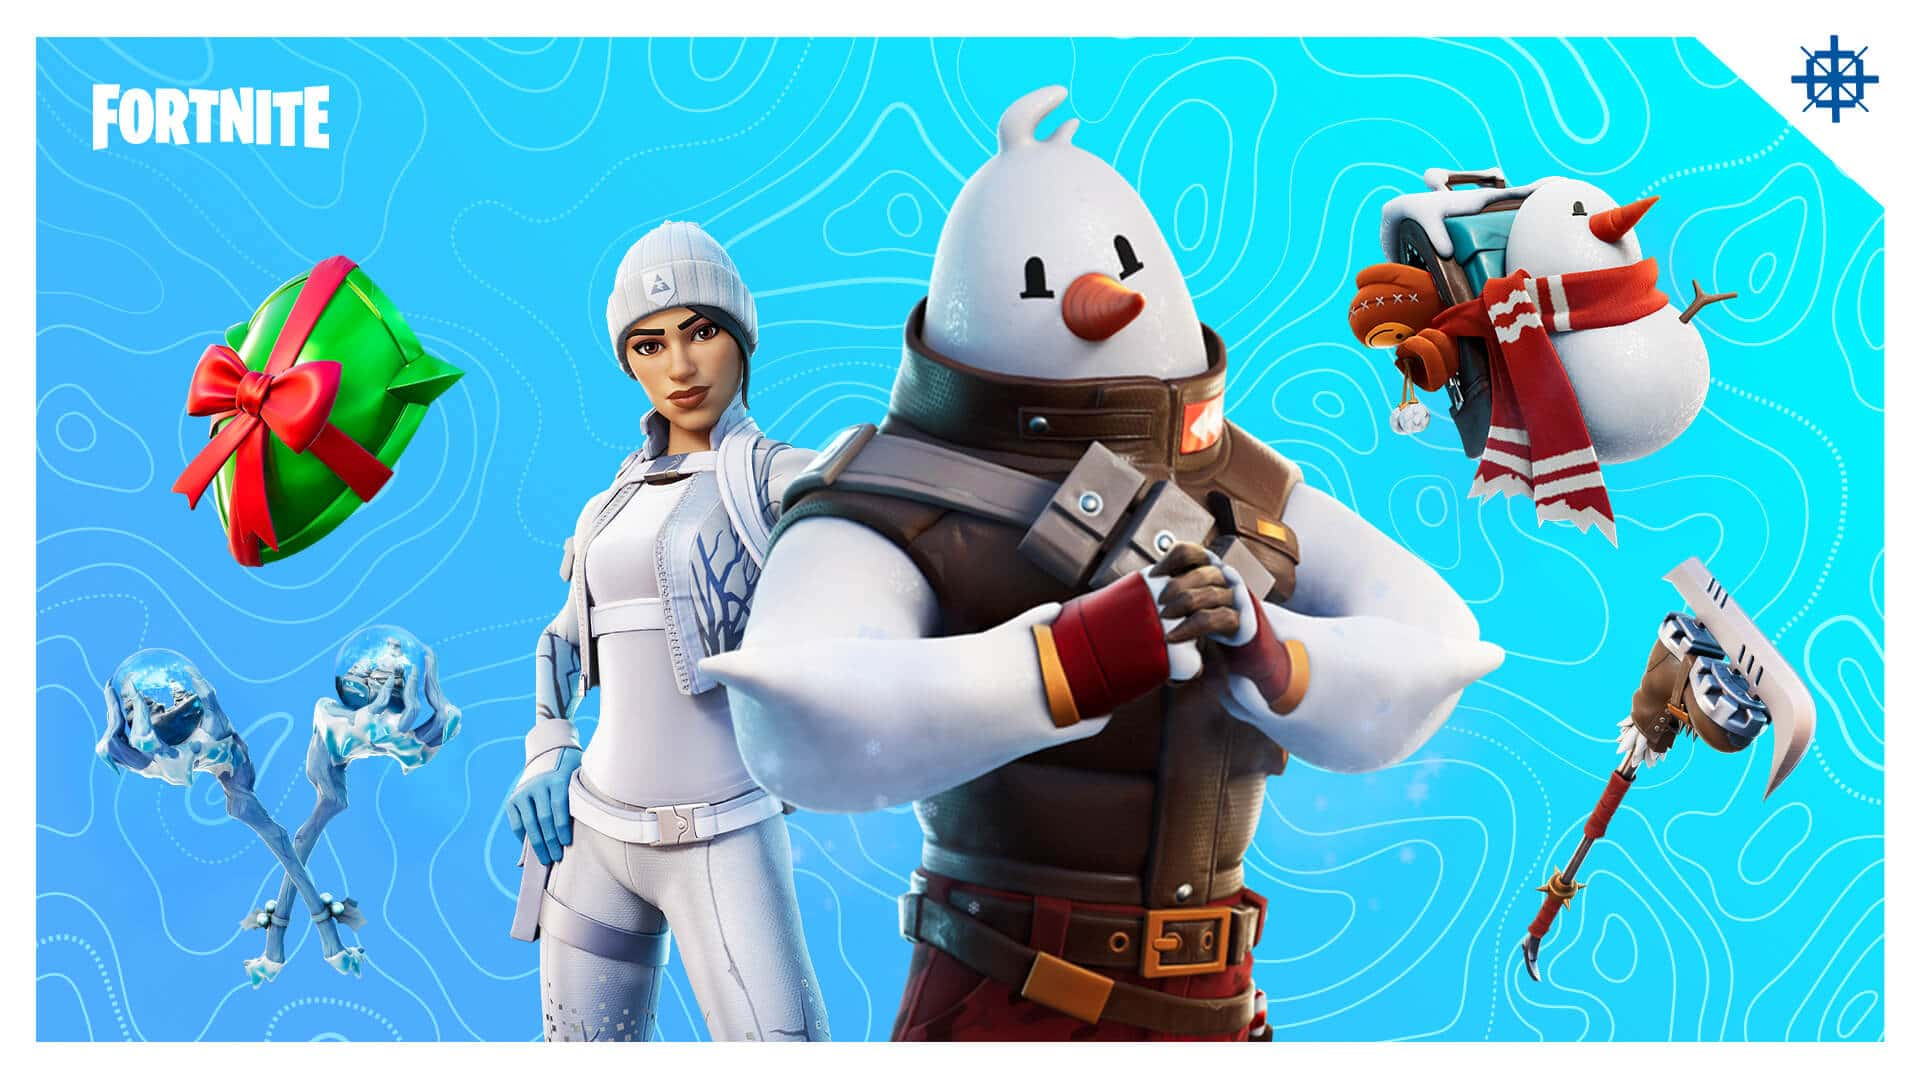 Fortnite Operation Snowdown Free Rewards